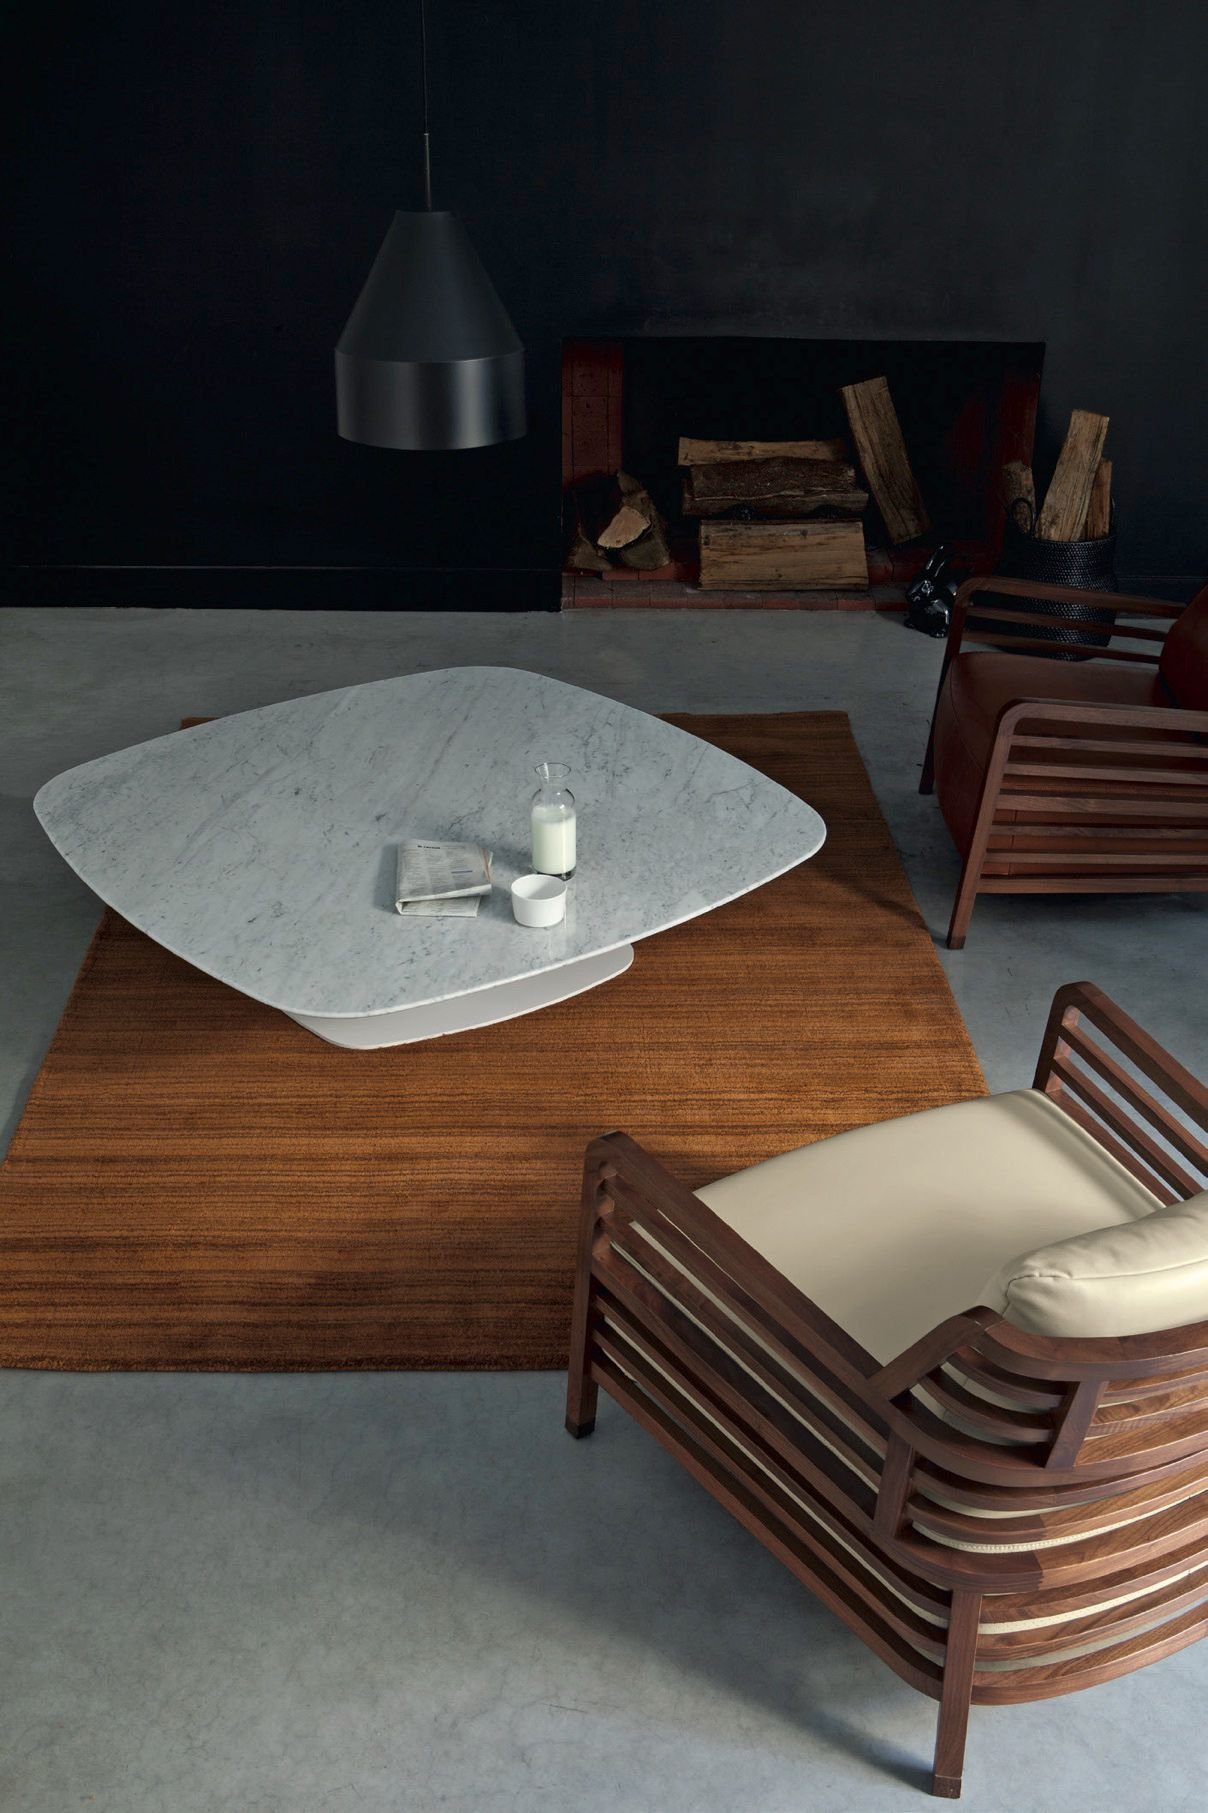 Alster Coffee Table in Carrara Marble; designed by Emmanuel